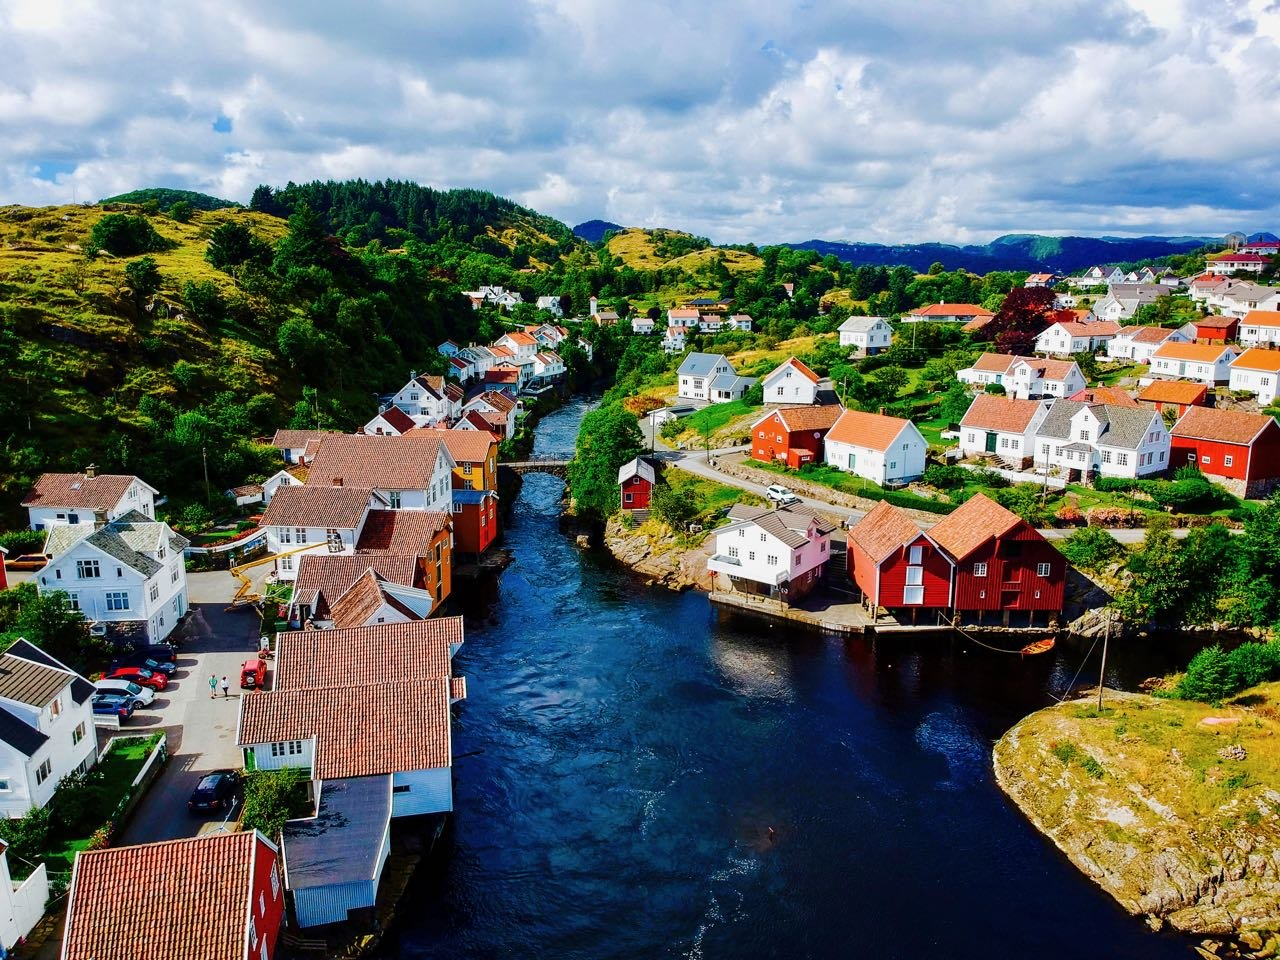 Road trip Norway Sogndalstrand drone photo